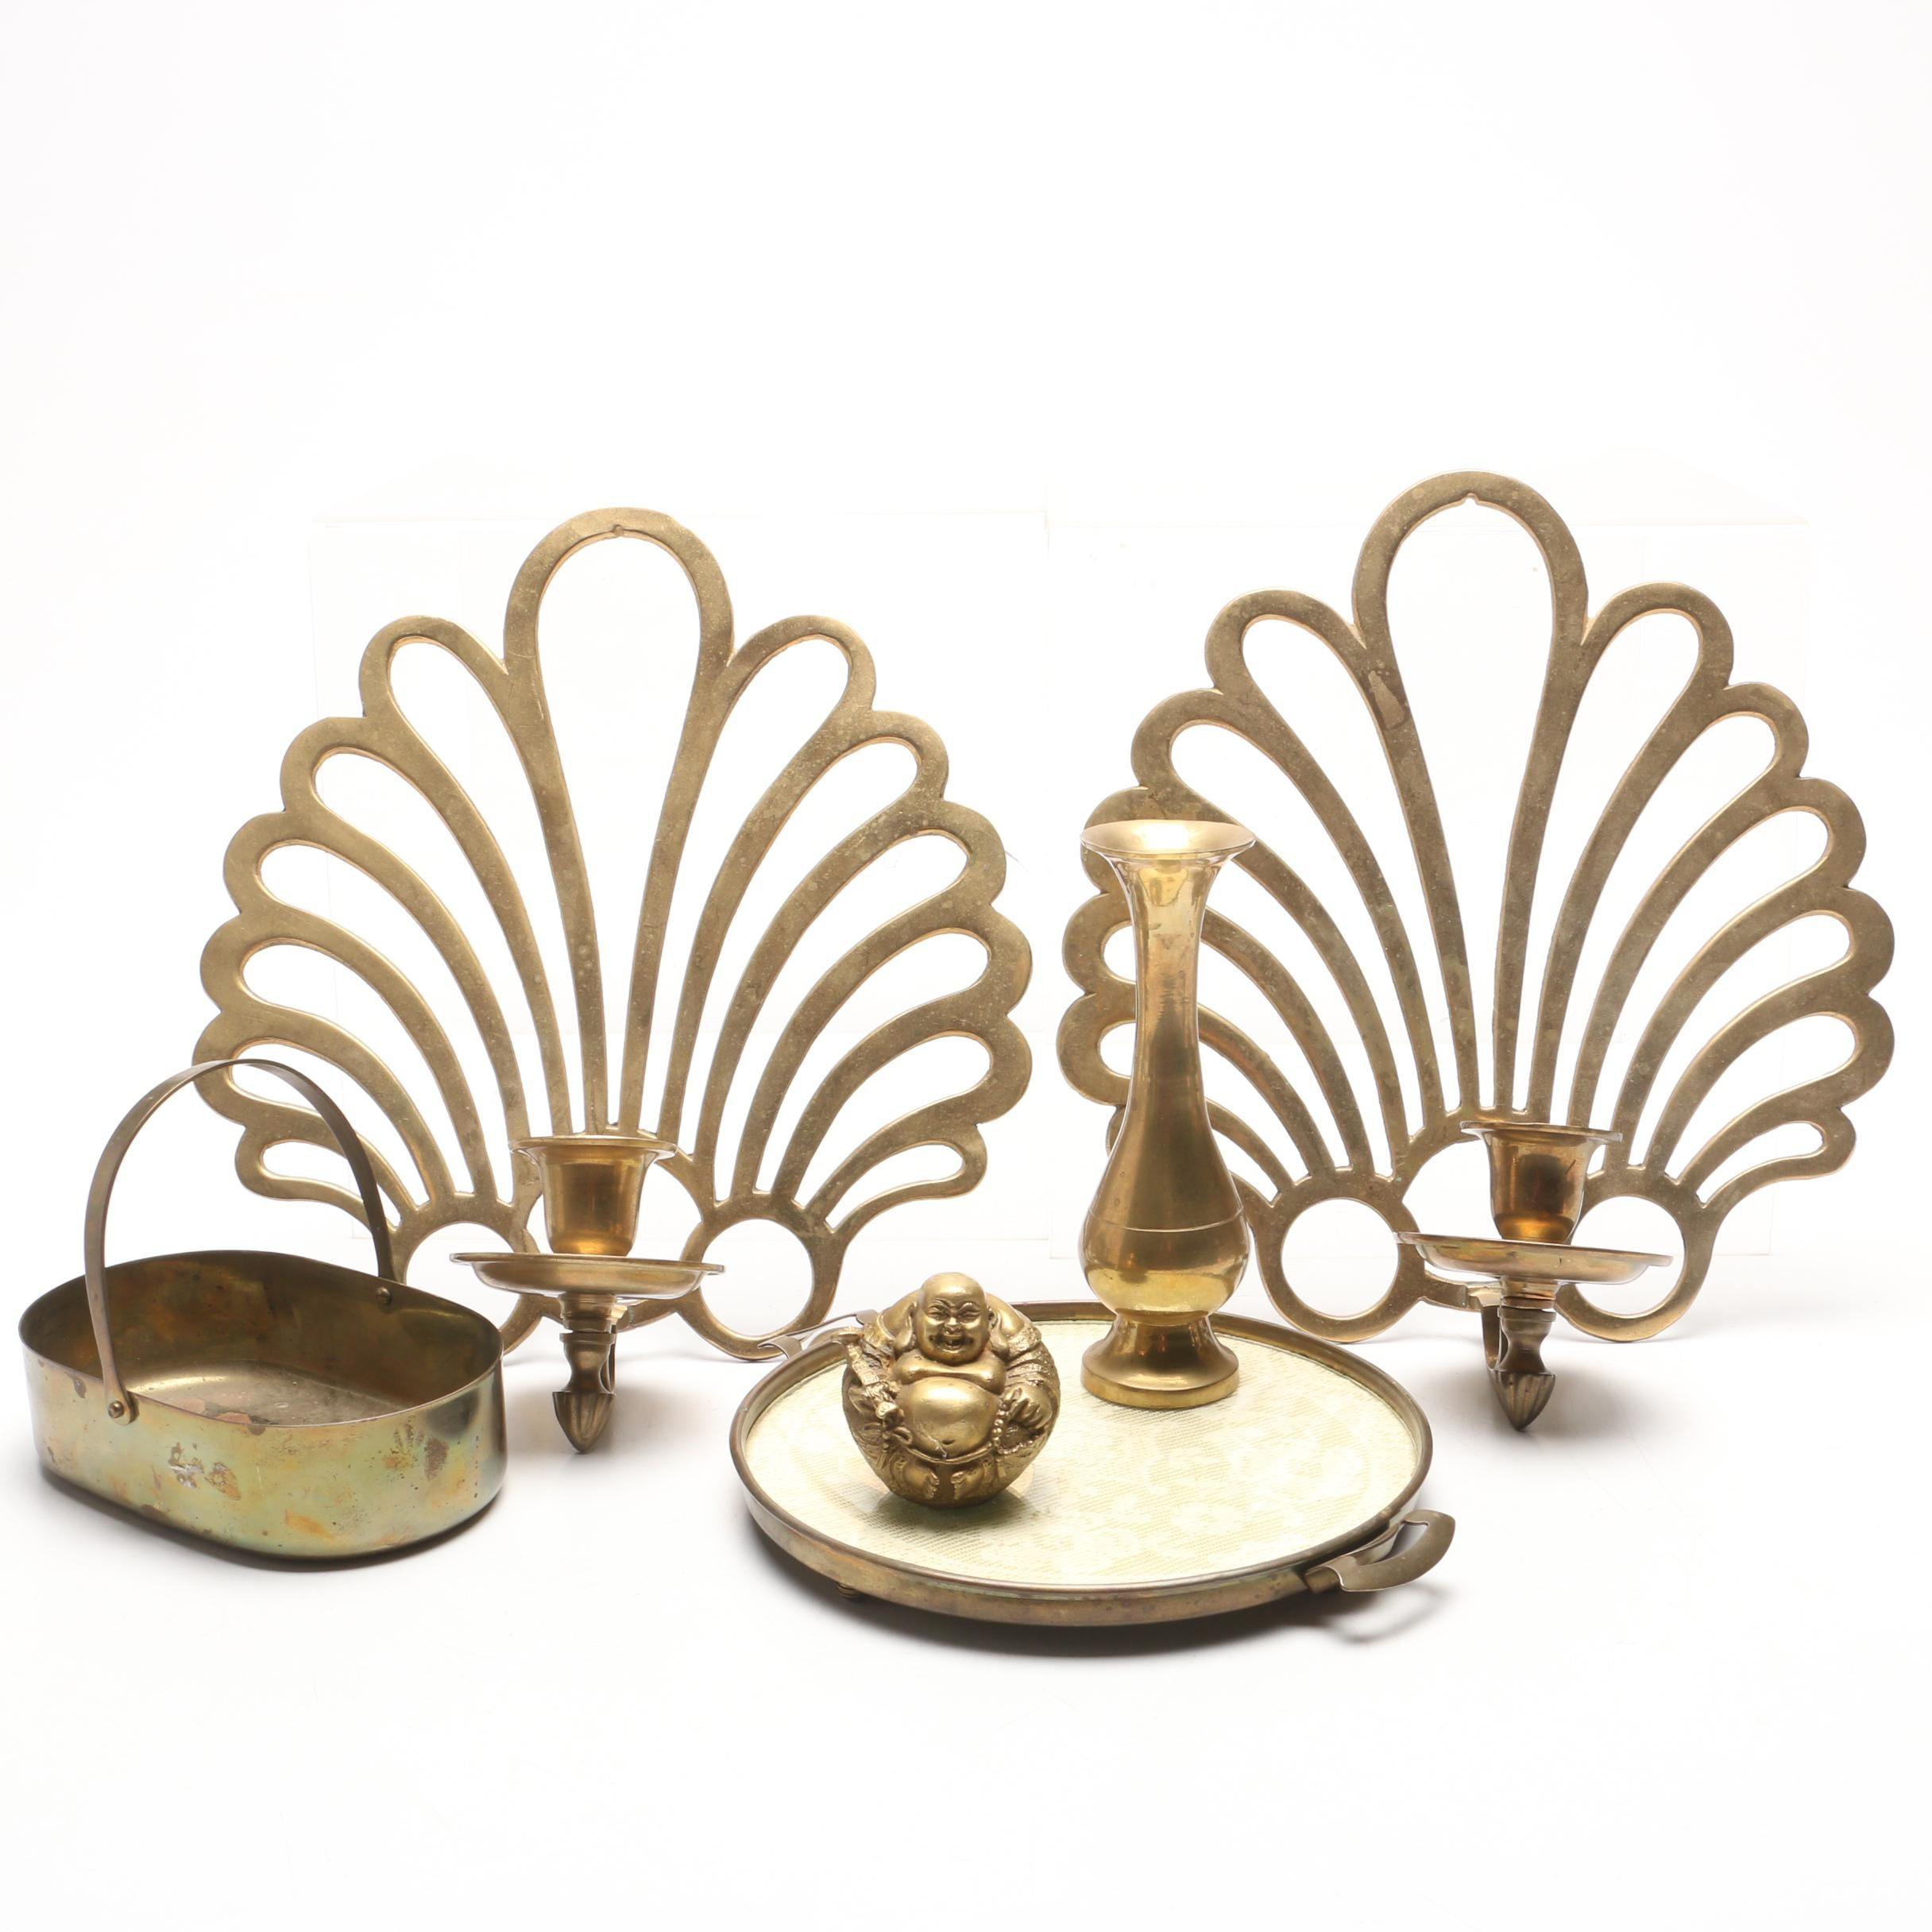 Park Sherman Brass Candle Sconces and Home Decor